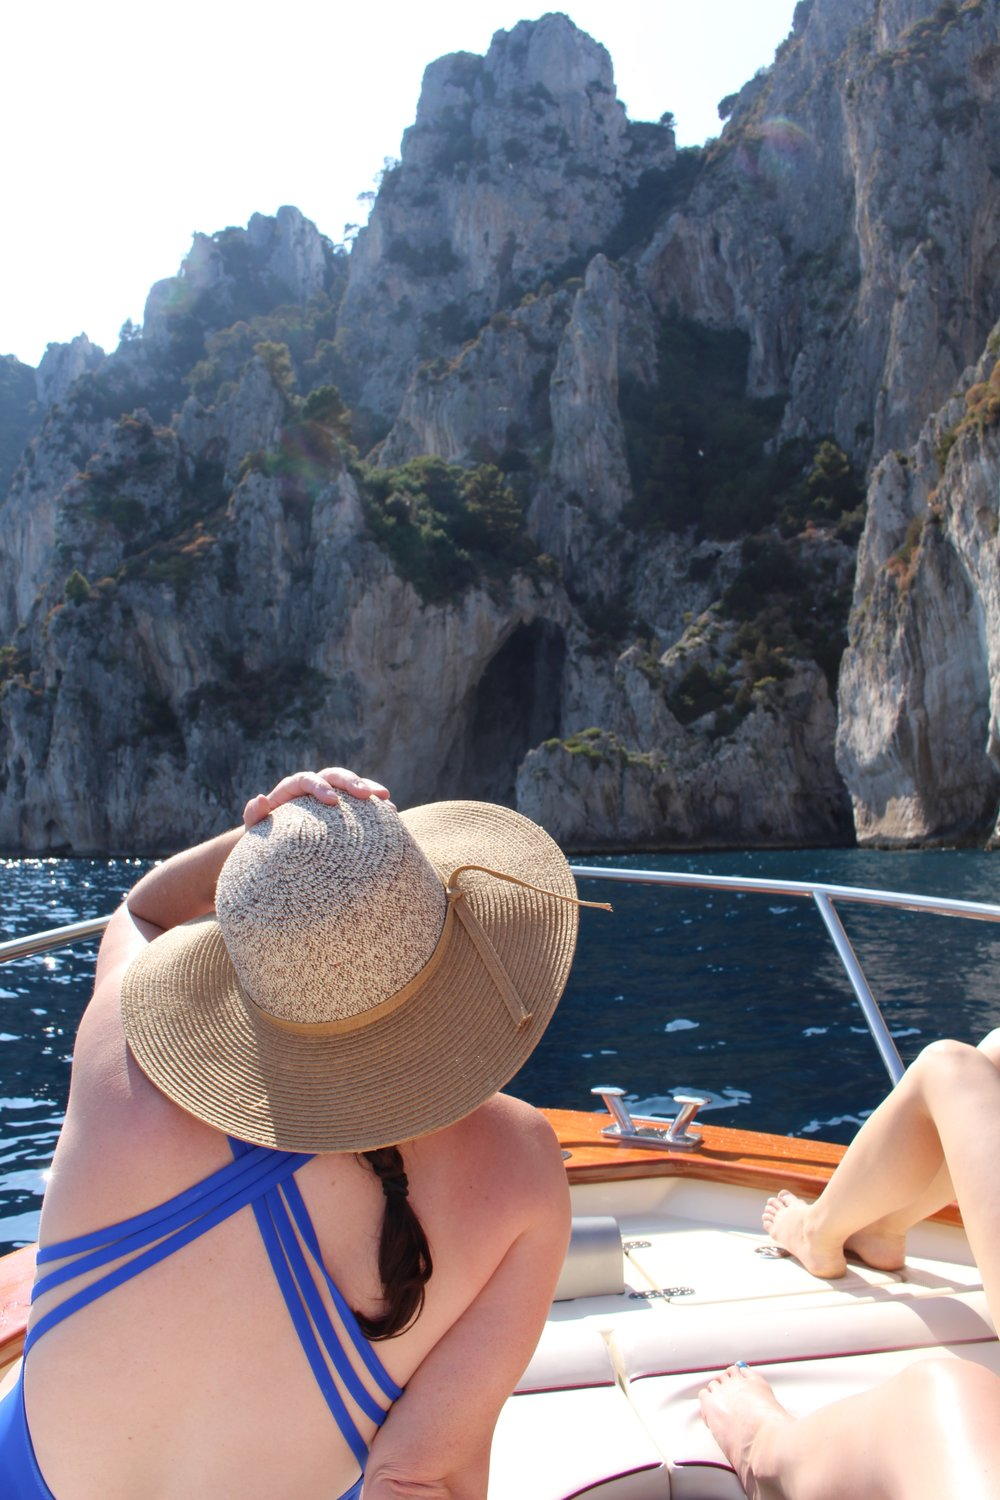 My drop dead gorgeous cousin taking it all in on the boat in Capri, Italy